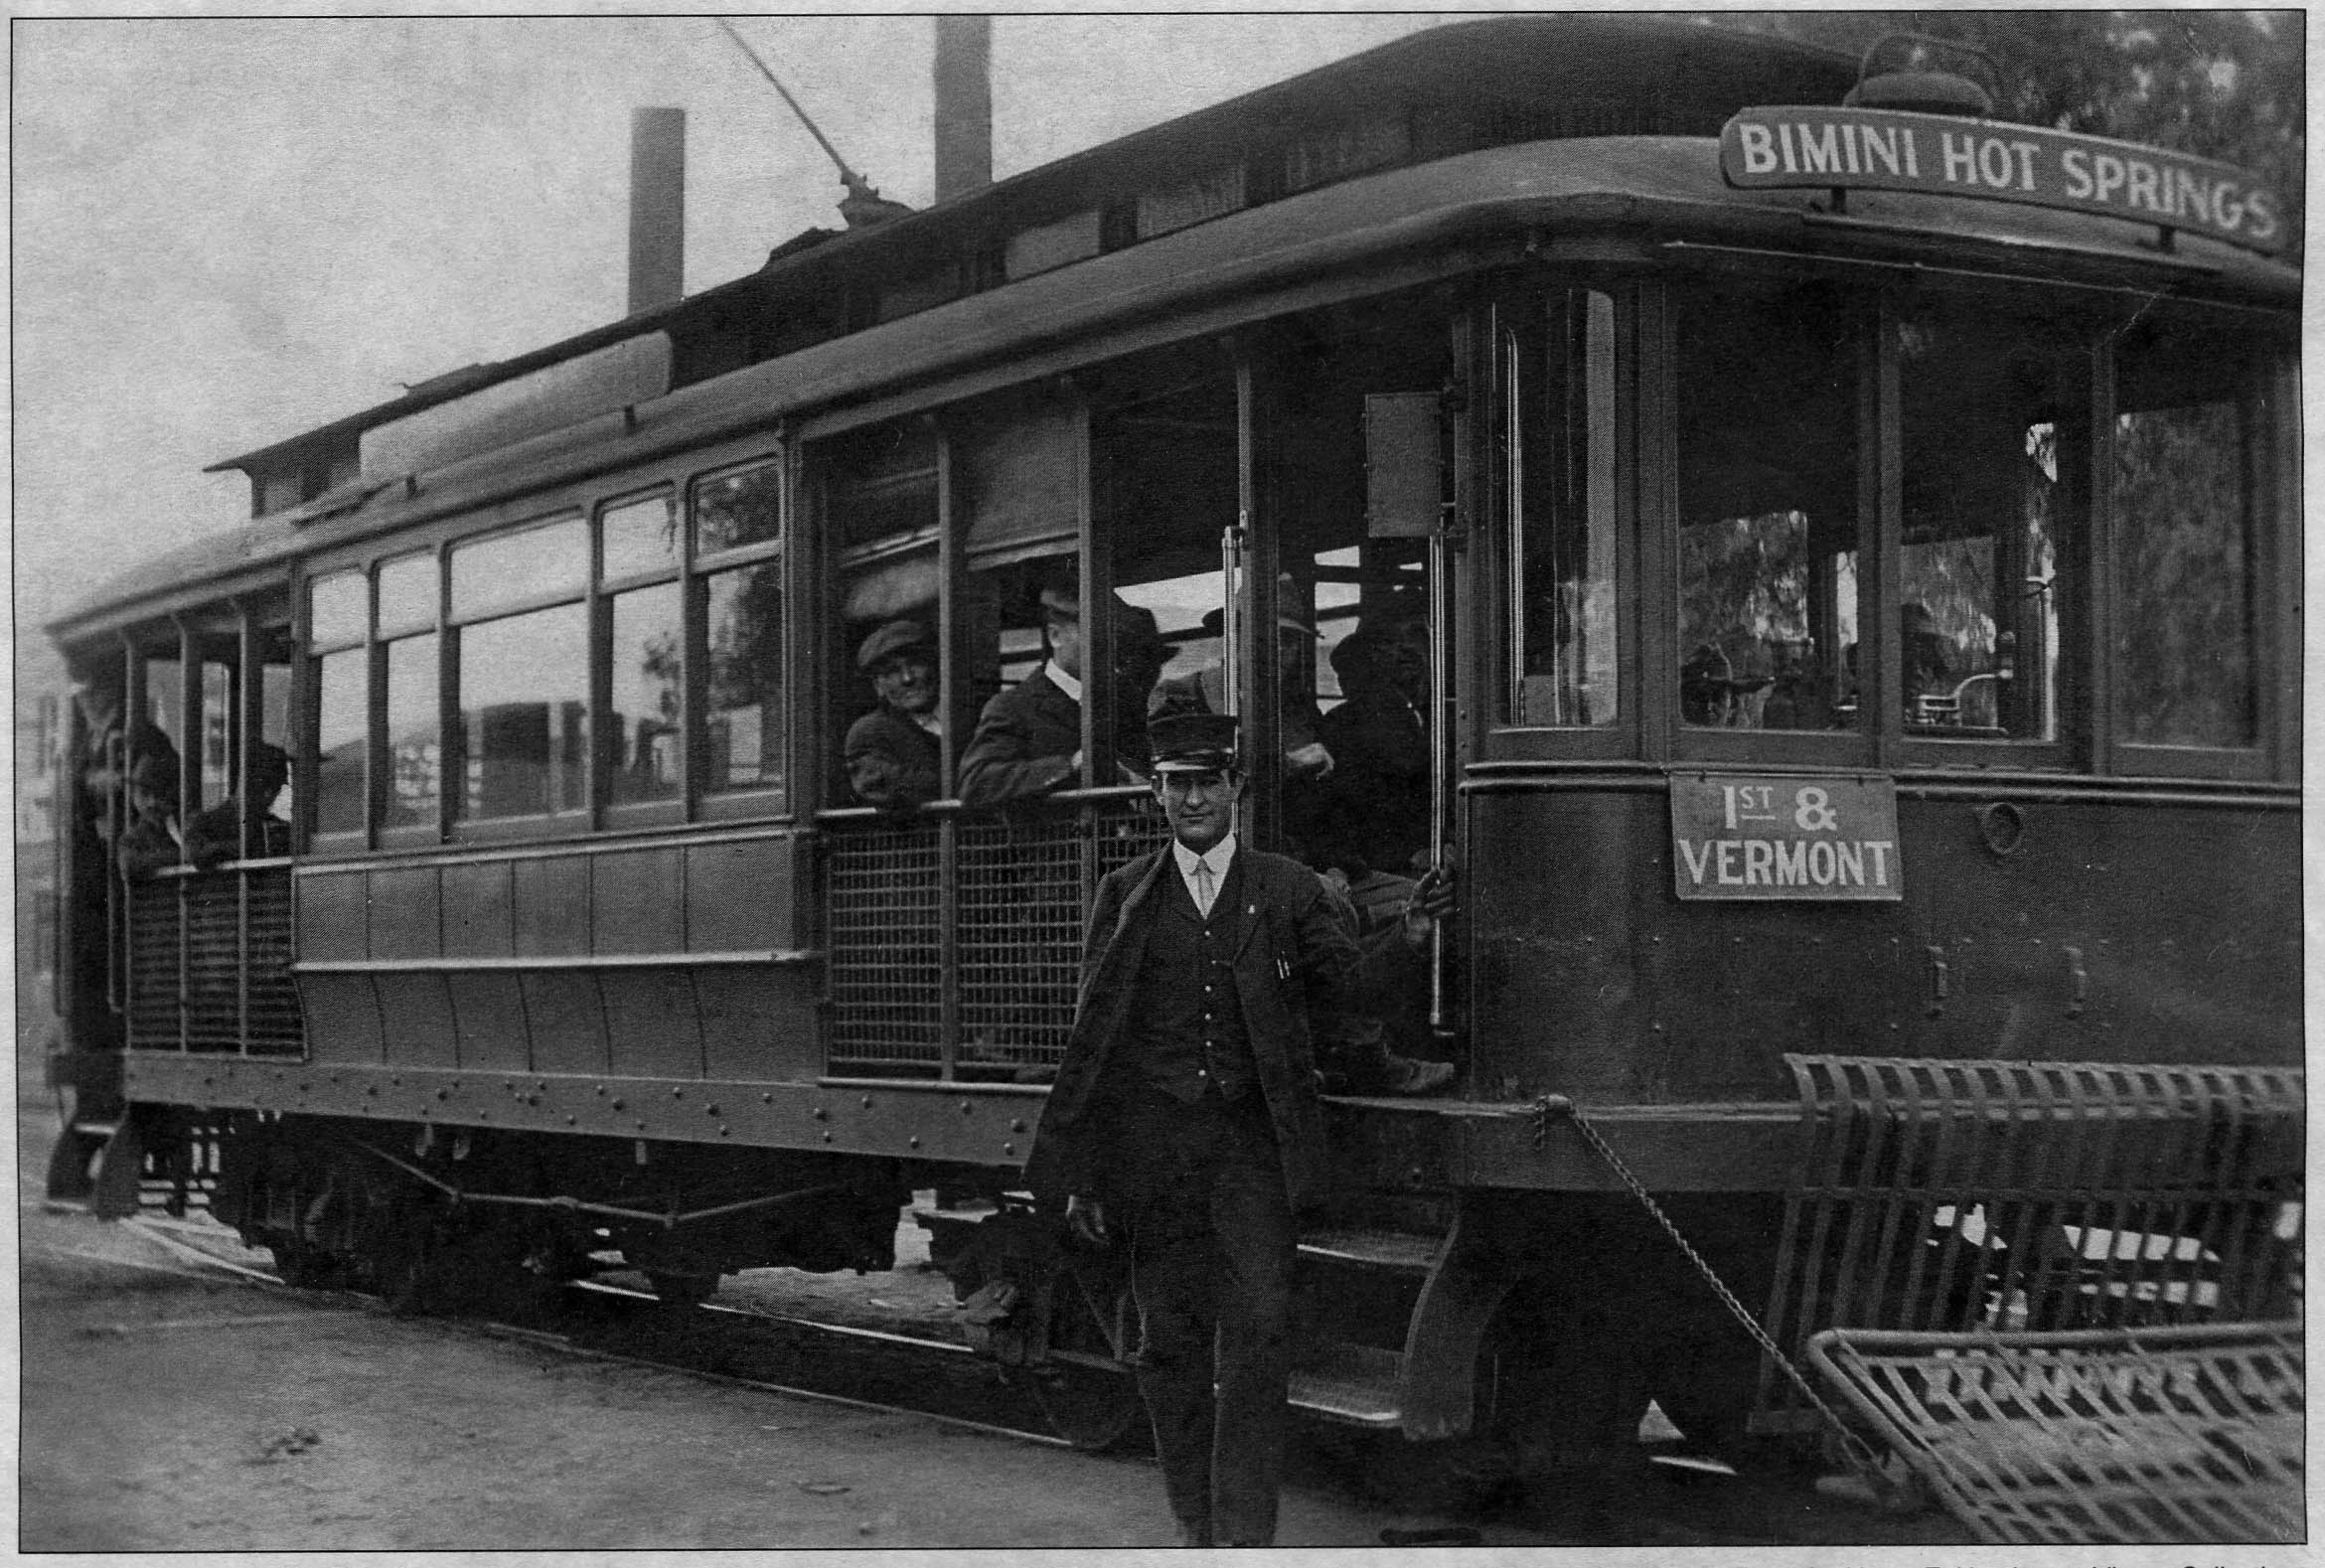 Undated photo of the streetcar headed for the Bimini Hot Springs. Photo from the Henry E. Huntington Library Collection, appeared in the Los Angeles Railroad Heritage Foundation Journal winter 2008/2009